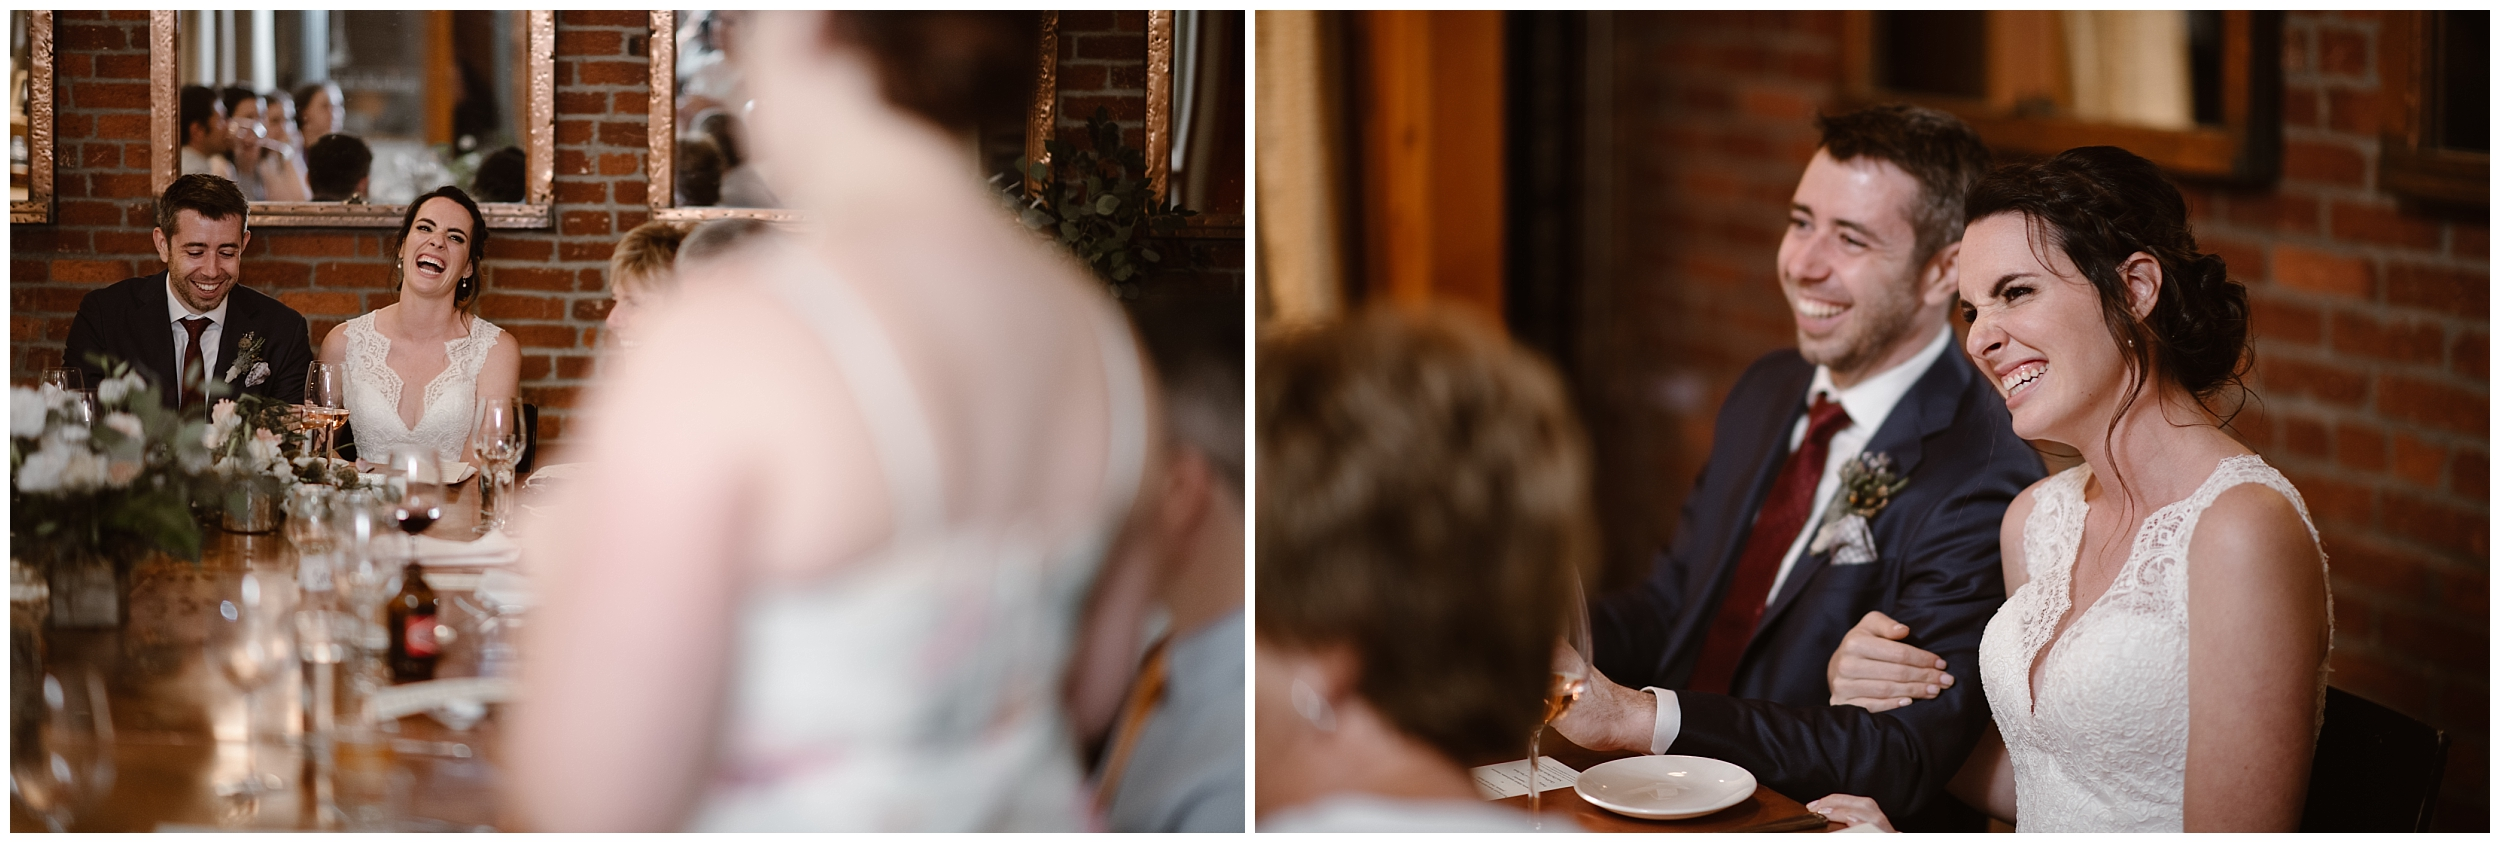 These side-by-side elopement photos show Lauryn and David during their reception after elopement in a swanky Portland restaurant. Total foodies, one of their unique eloping ideas was to get married somewhere in nature but close enough to a city to eat delicious food.